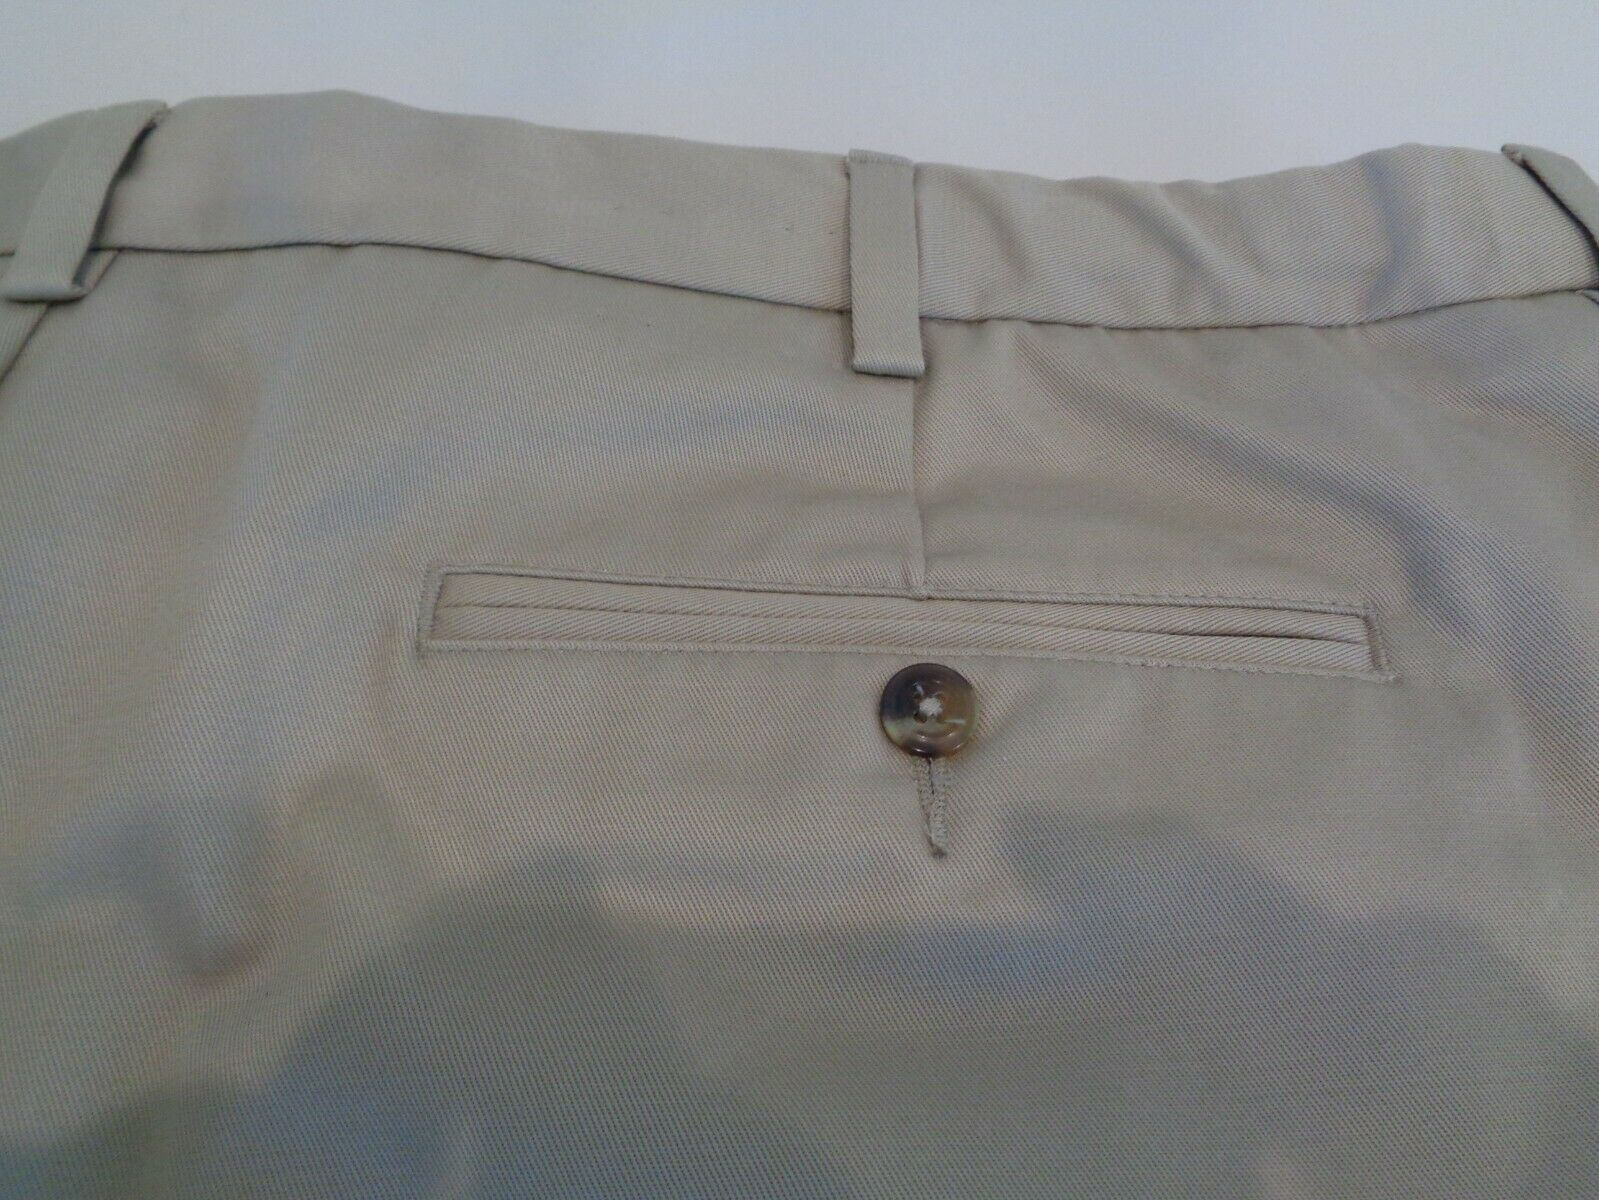 Roundtree & Yorke Size 46 EXPANDER WAIST Khaki Cotton Pleated New Mens Shorts